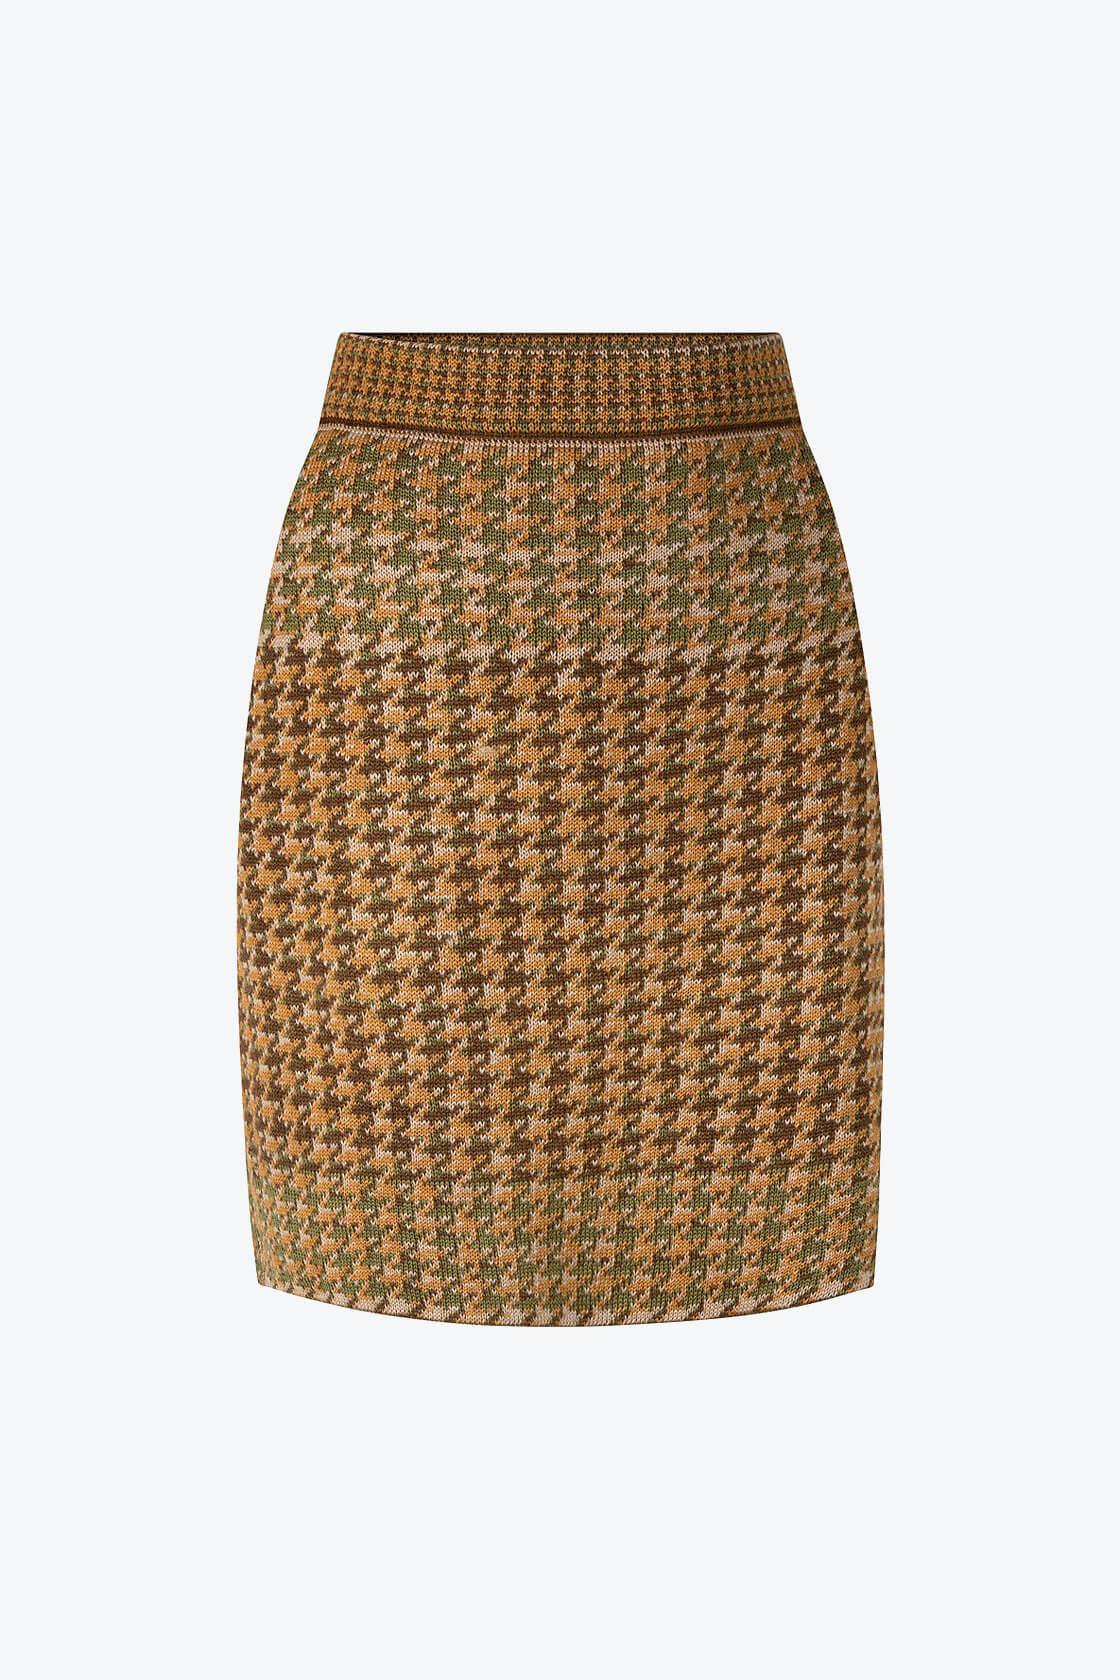 Knitted Knee Length Pencil Skirt In Pieds De Poule Pattern Tweed Moss